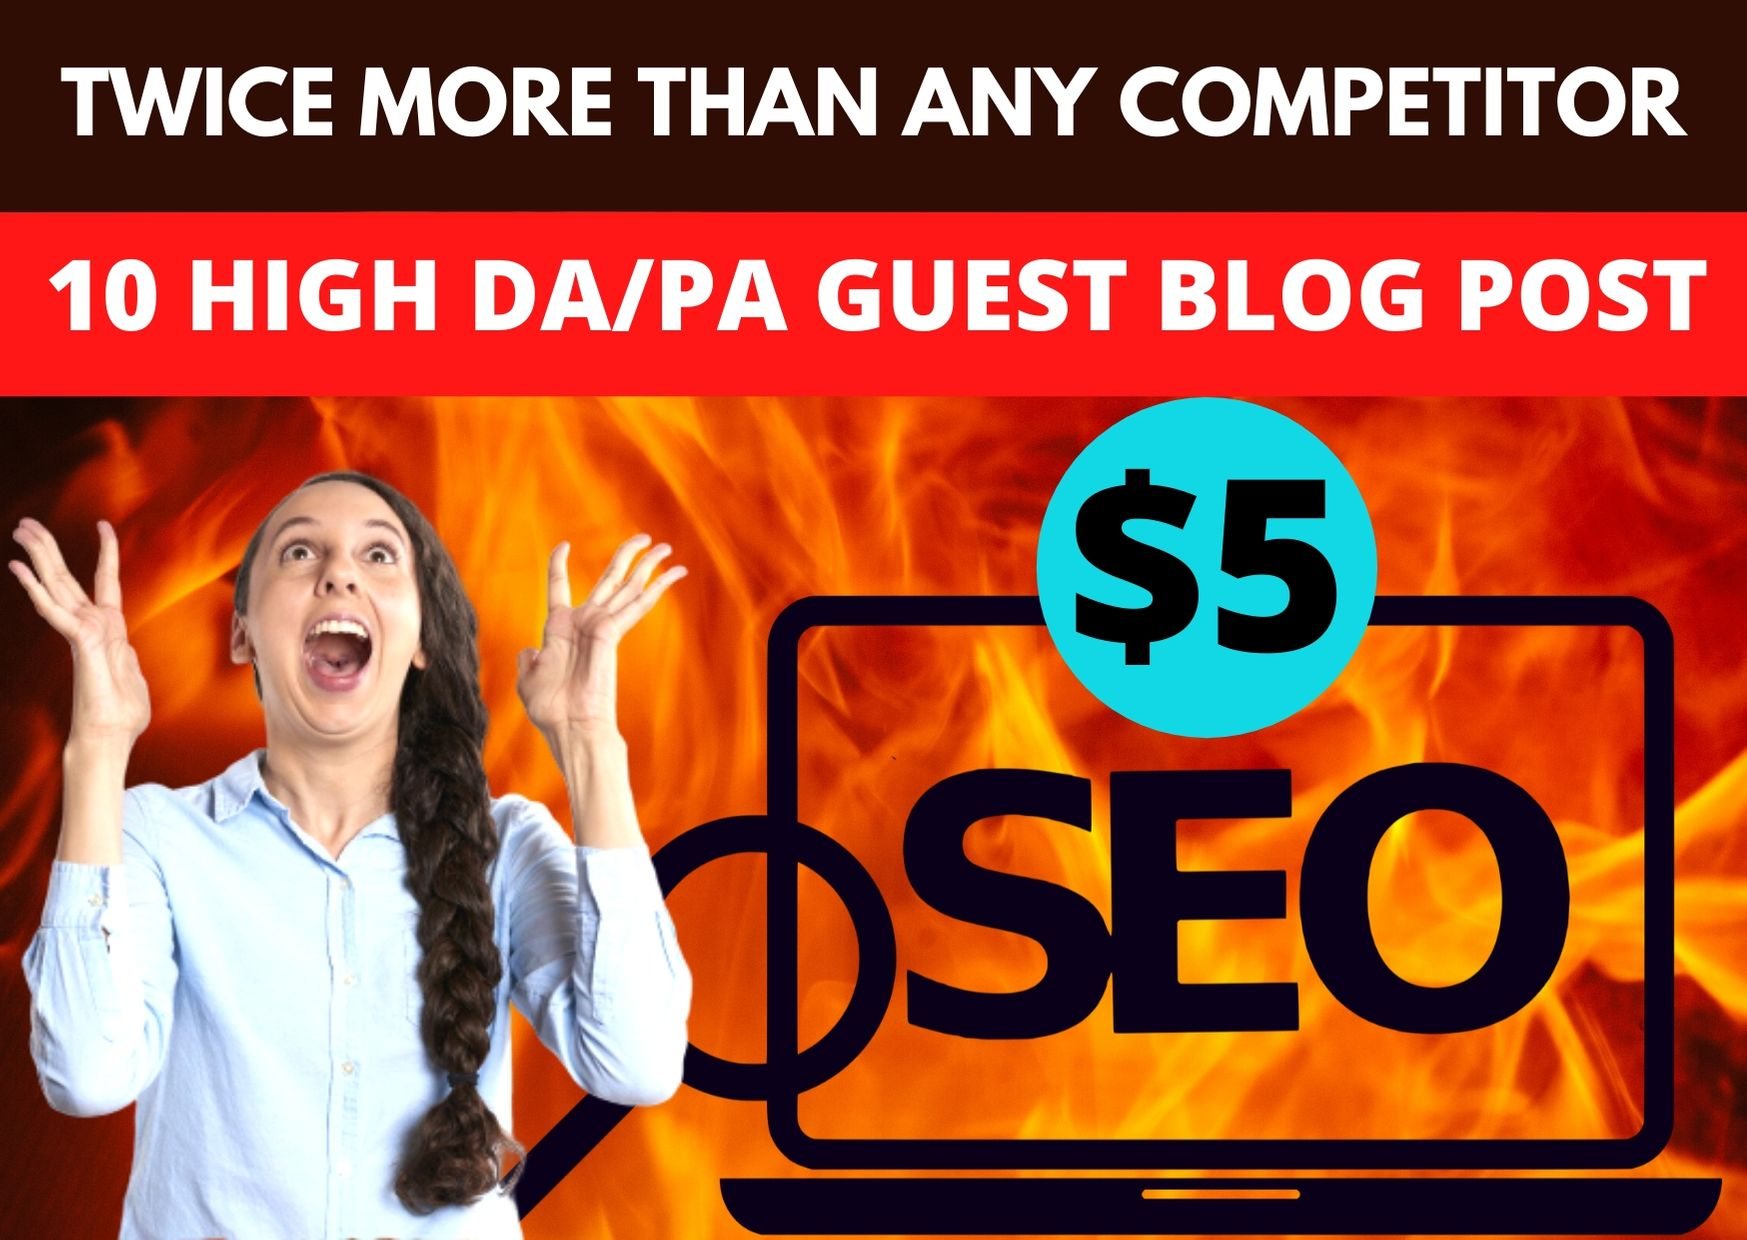 I will write & Published 10 unique guest post backlinks on high DA PA sites